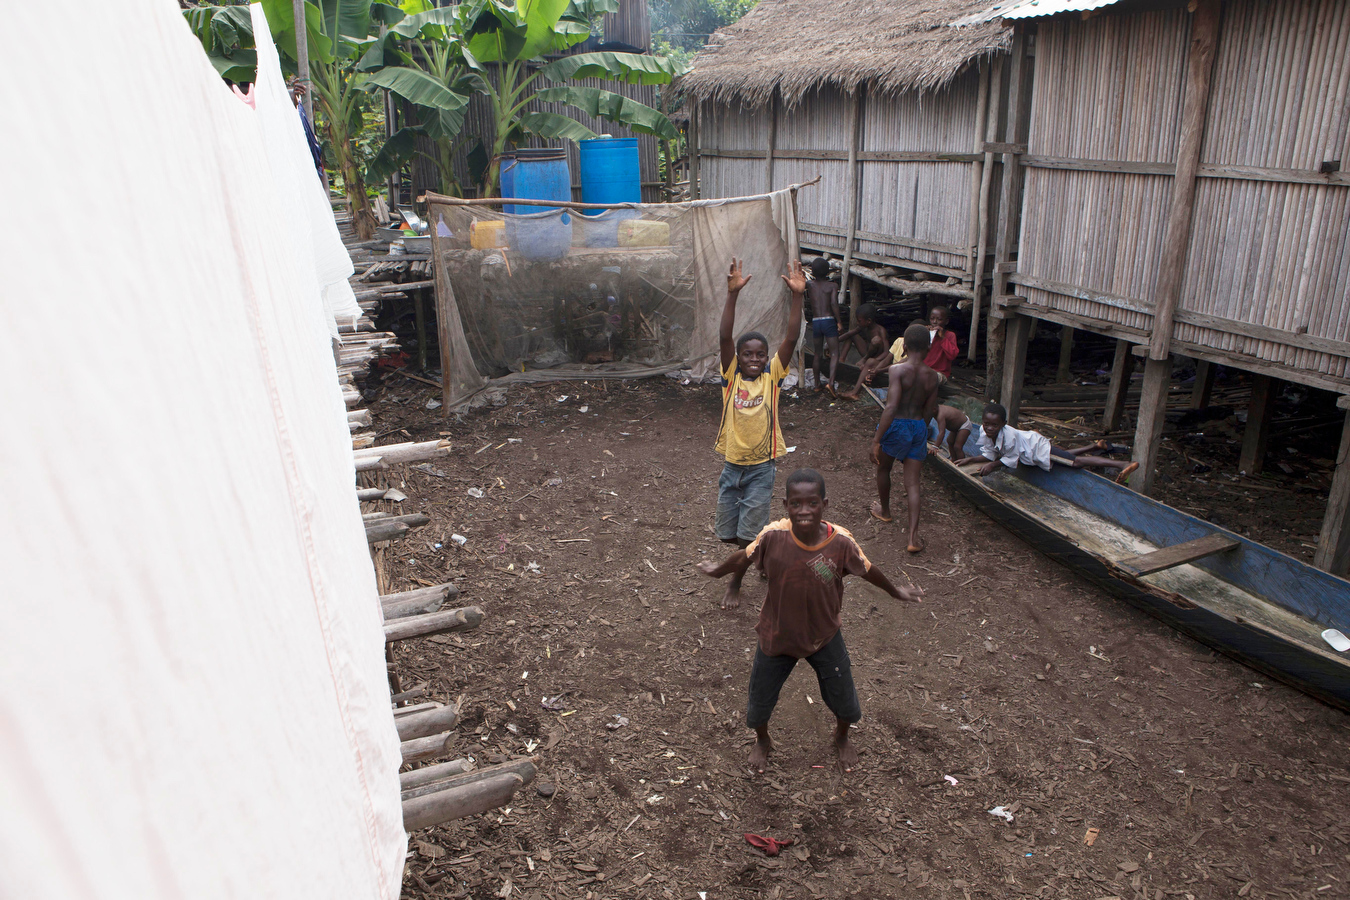 These kids were on a section of land playing soccer as best as they could within the cramped space. On the left is laundry hanging on a line. Overall the children were very curious and friendly.